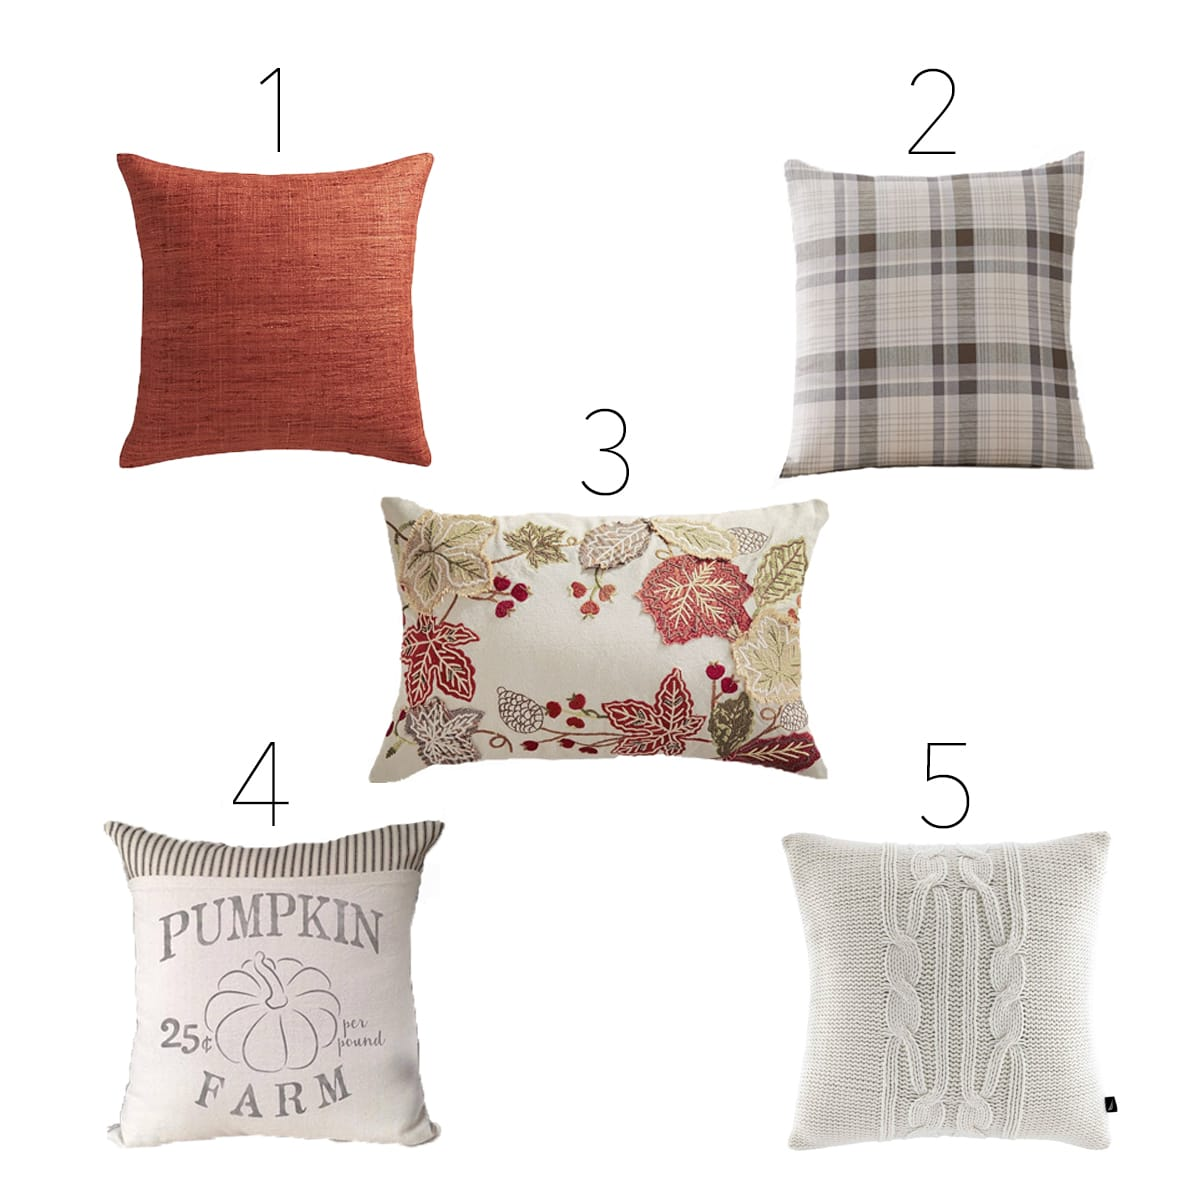 Fall-inspired pillows